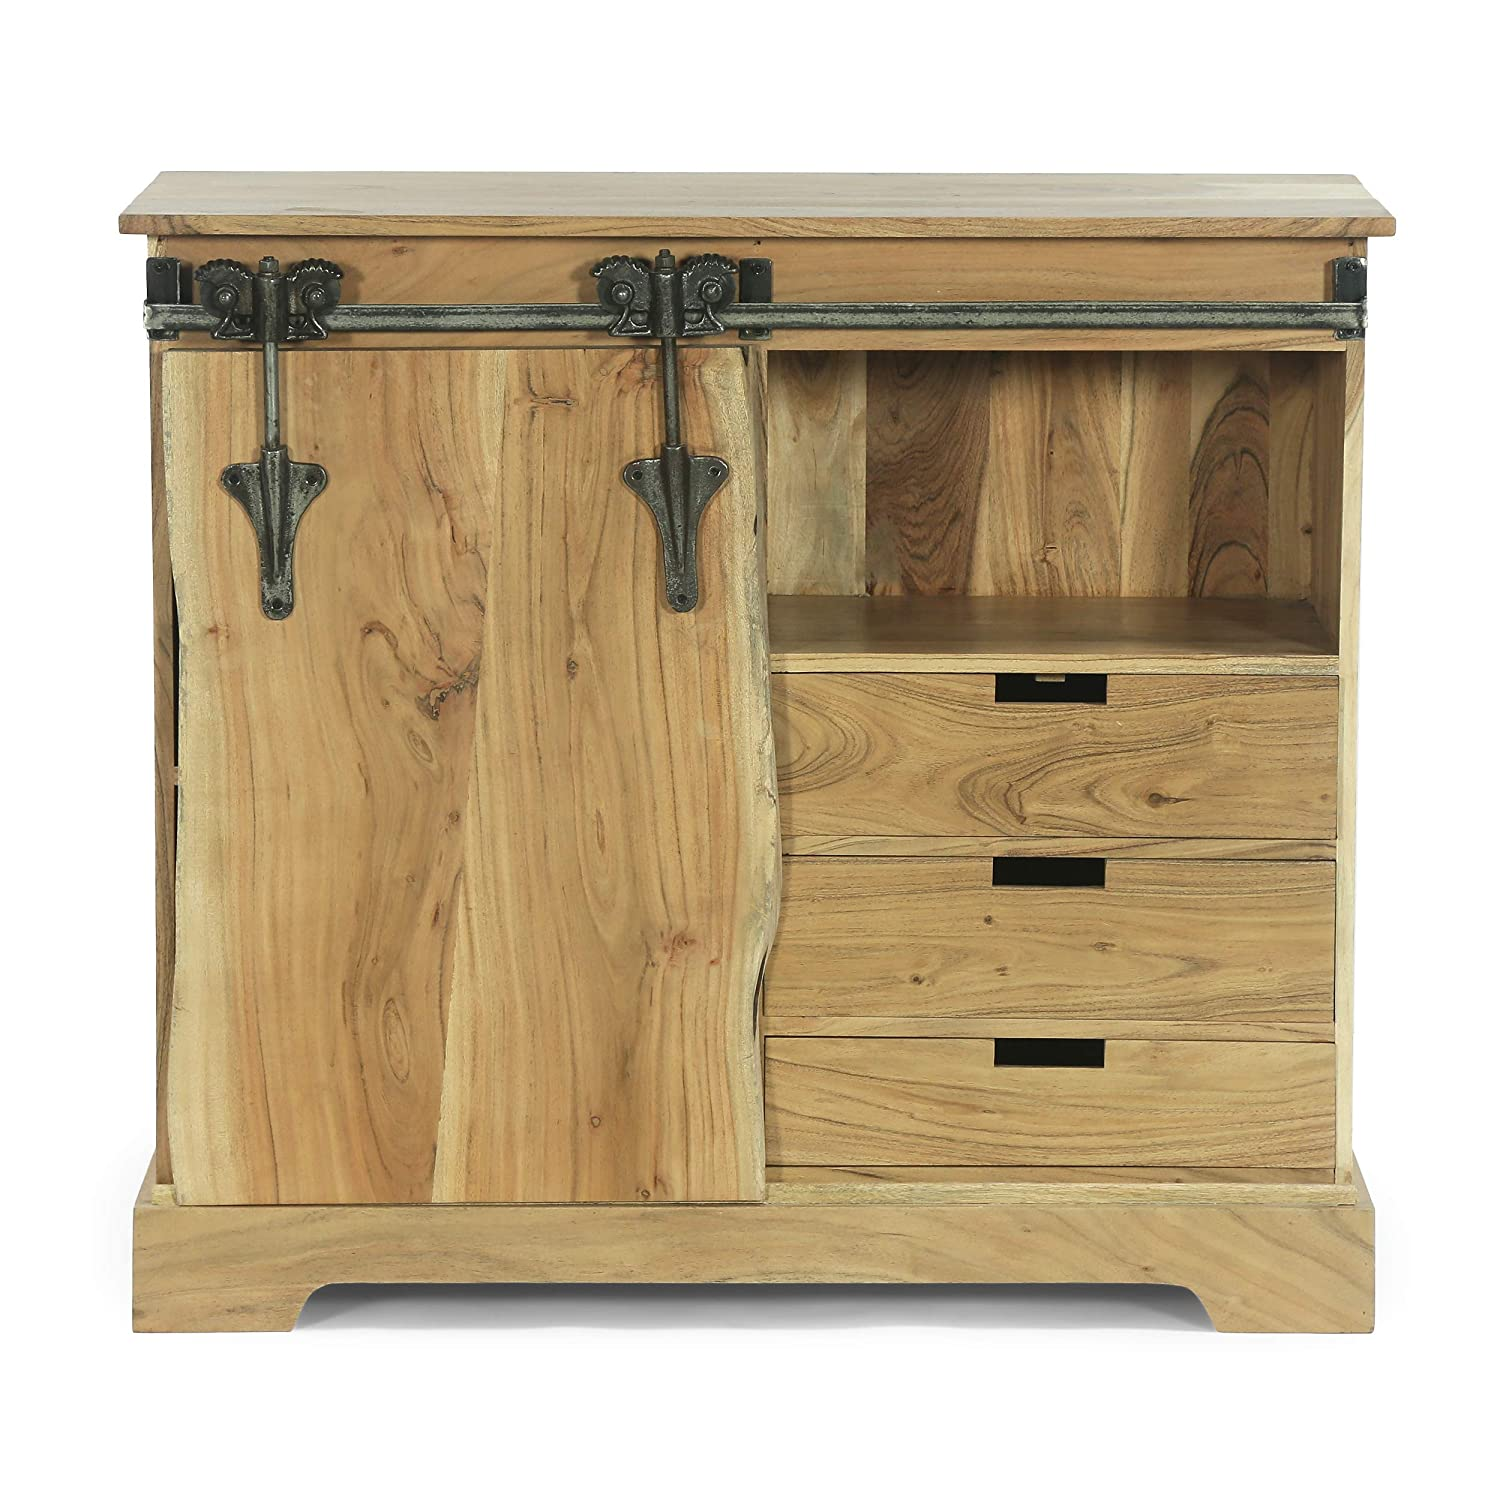 Christopher Knight Home Laymon Natural Gorgeous Super popular specialty store Sideboard